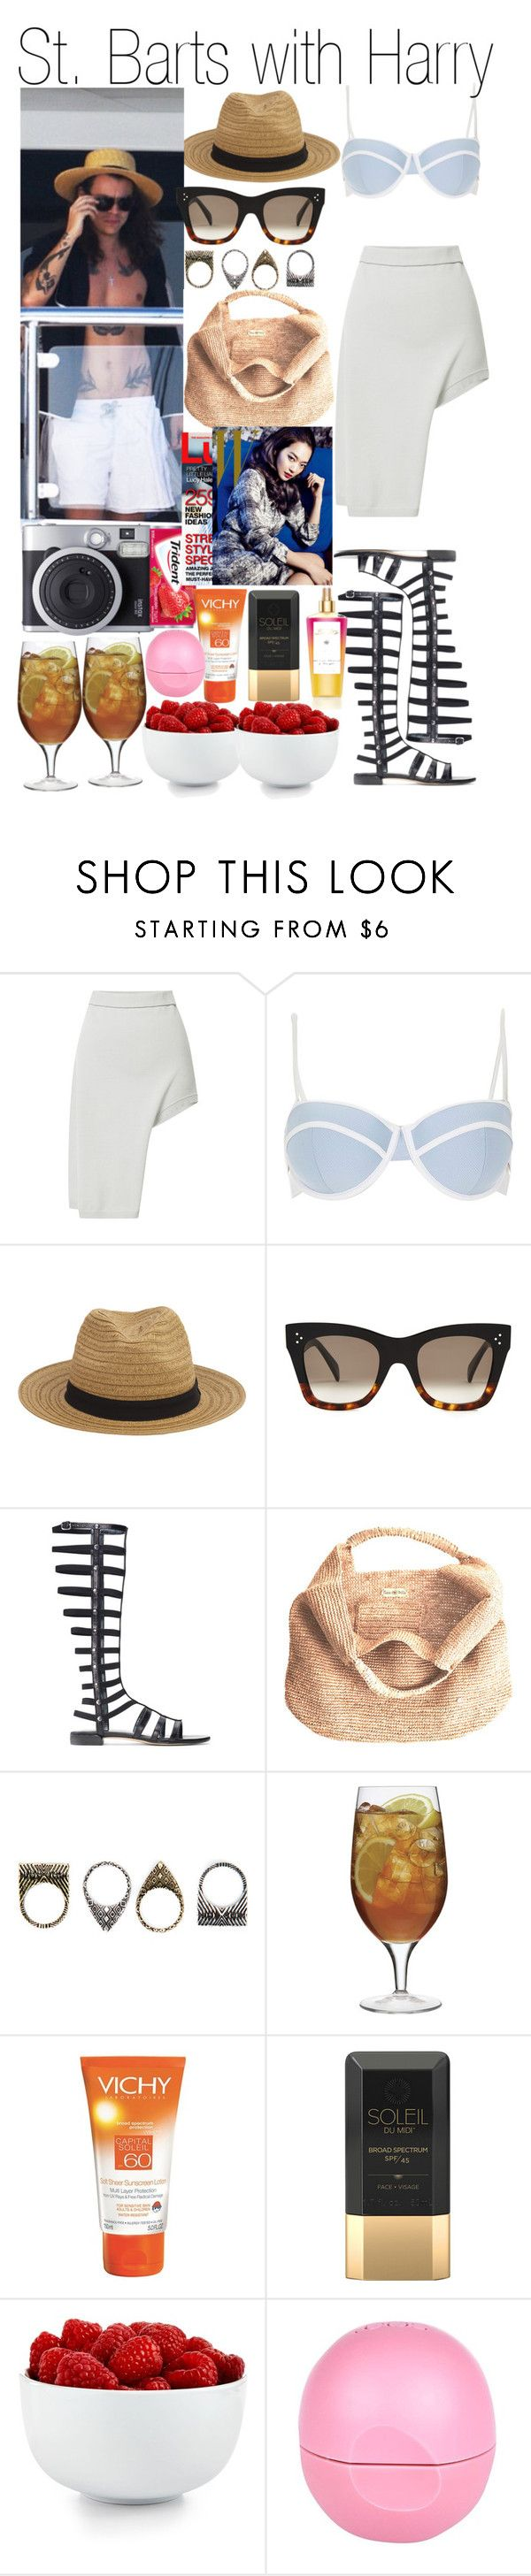 """St. Barts with Harry"" by kiksfashion ❤ liked on Polyvore featuring Opening Ceremony, River Island, CÉLINE, Stuart Weitzman, Flora Bella, Pull&Bear, Luigi Bormioli, Vichy, Soleil Toujours and Victoria's Secret"